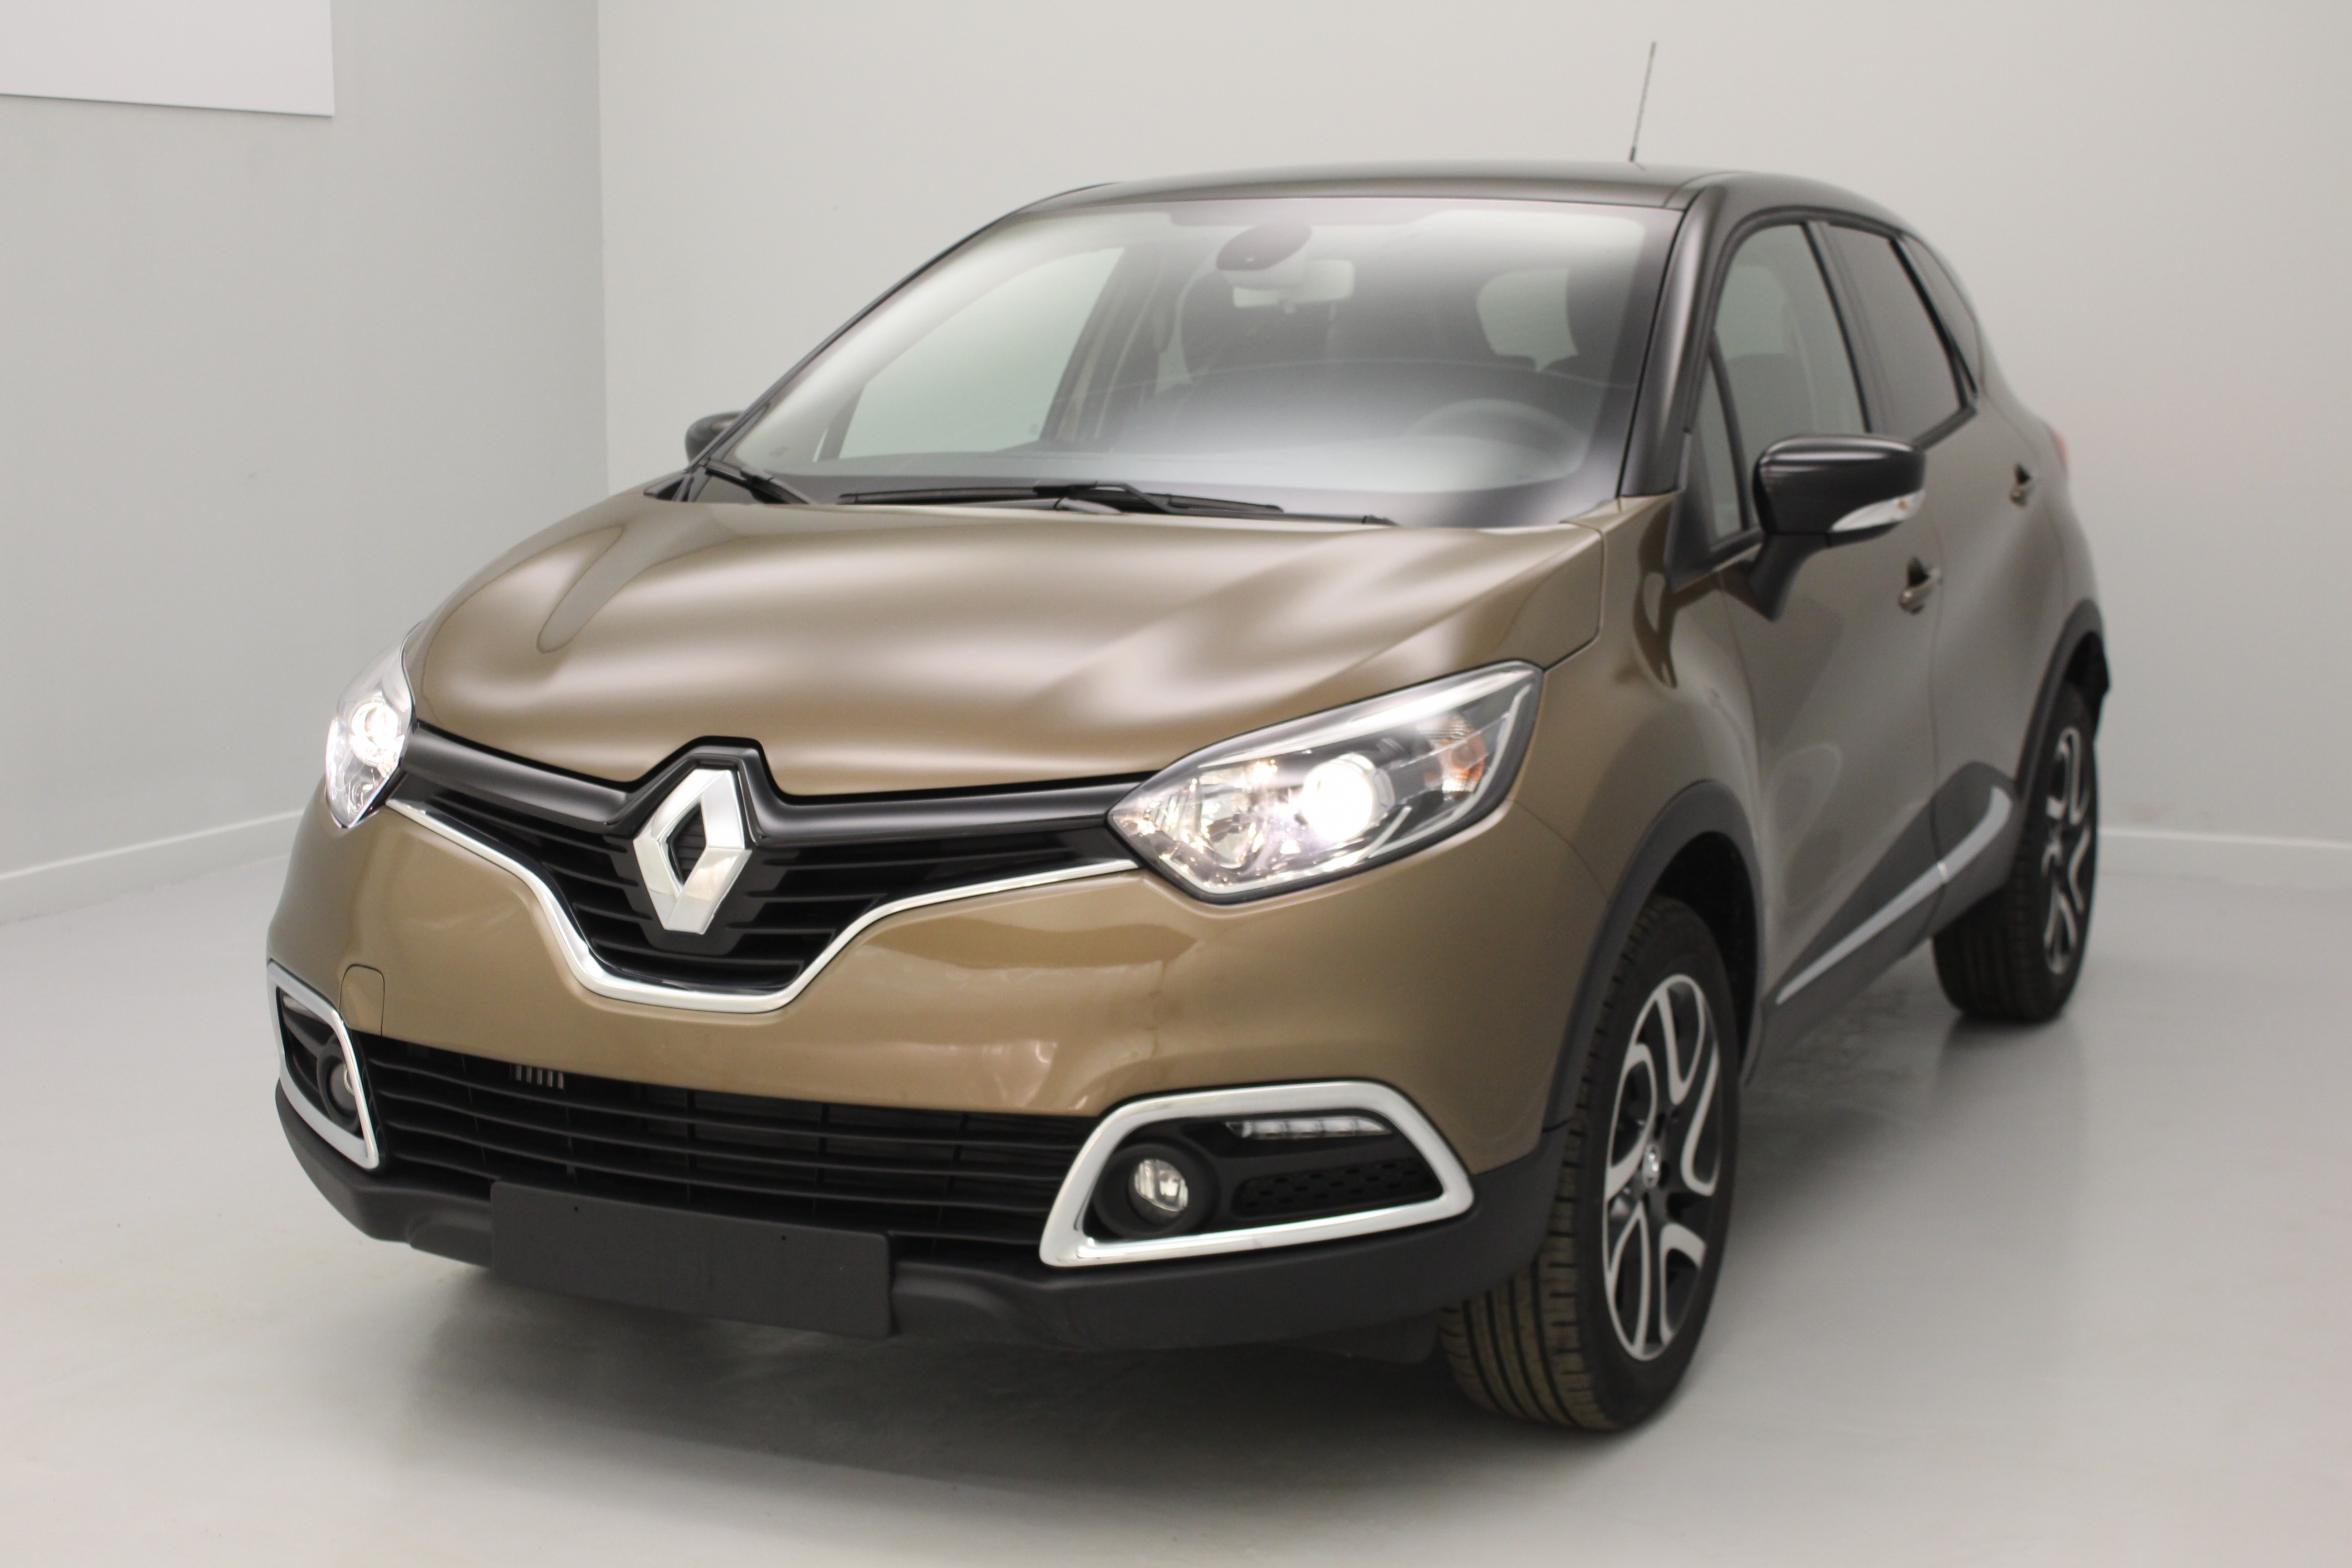 renault captur tce 90 energy intens brun cappuccino toit. Black Bedroom Furniture Sets. Home Design Ideas